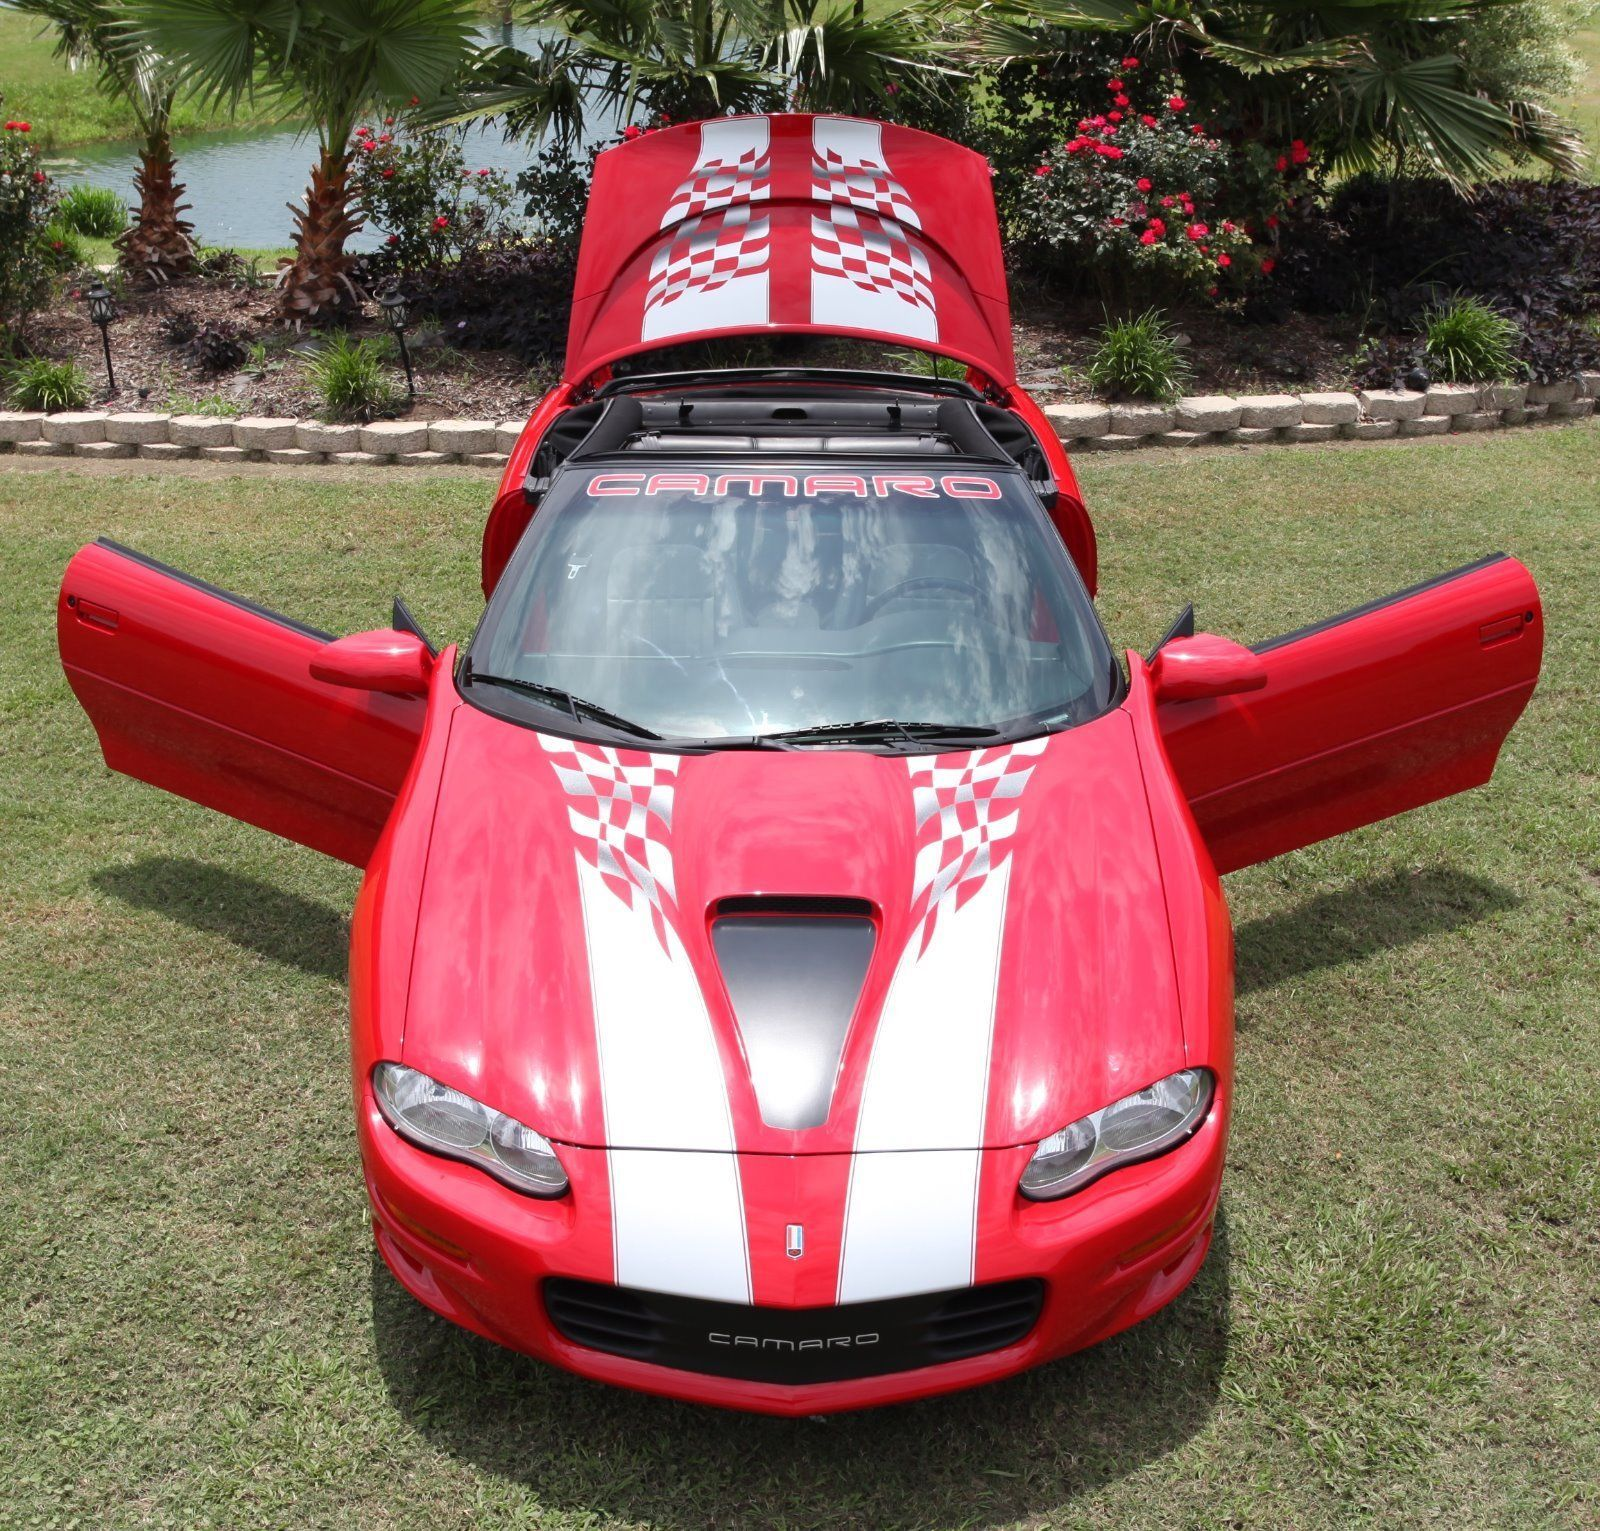 Pin On Trophy Cars For Sale